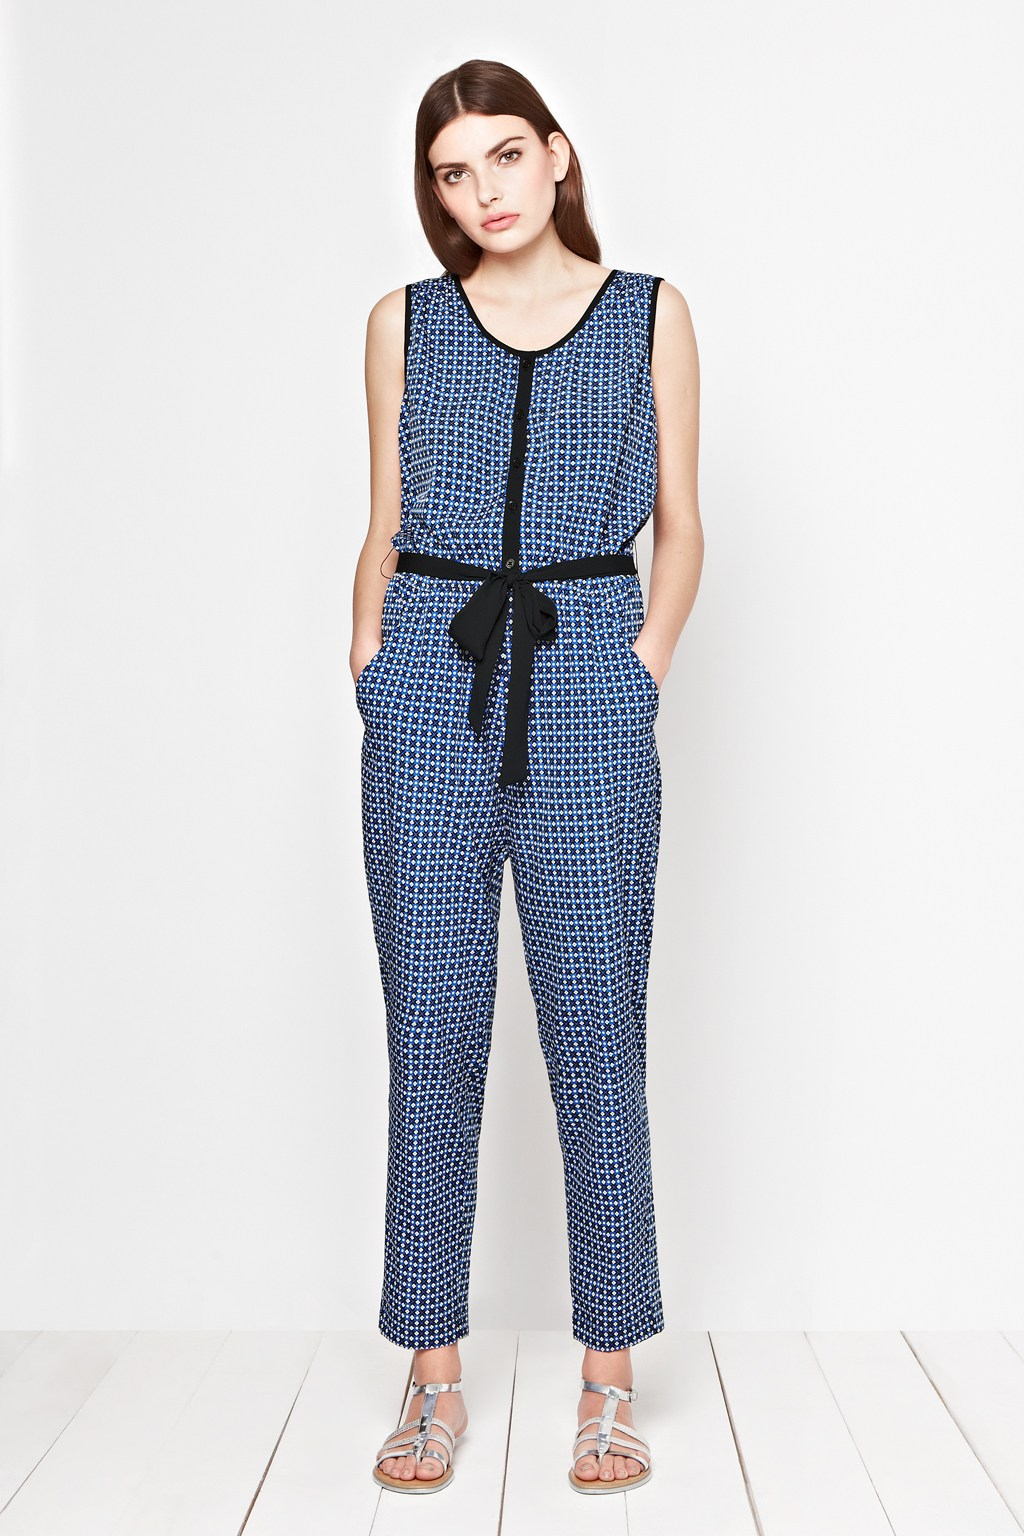 Cheap jumpsuits for sale, cute & casual jumpsuits for women with cheap price online at obmenvisitami.tk